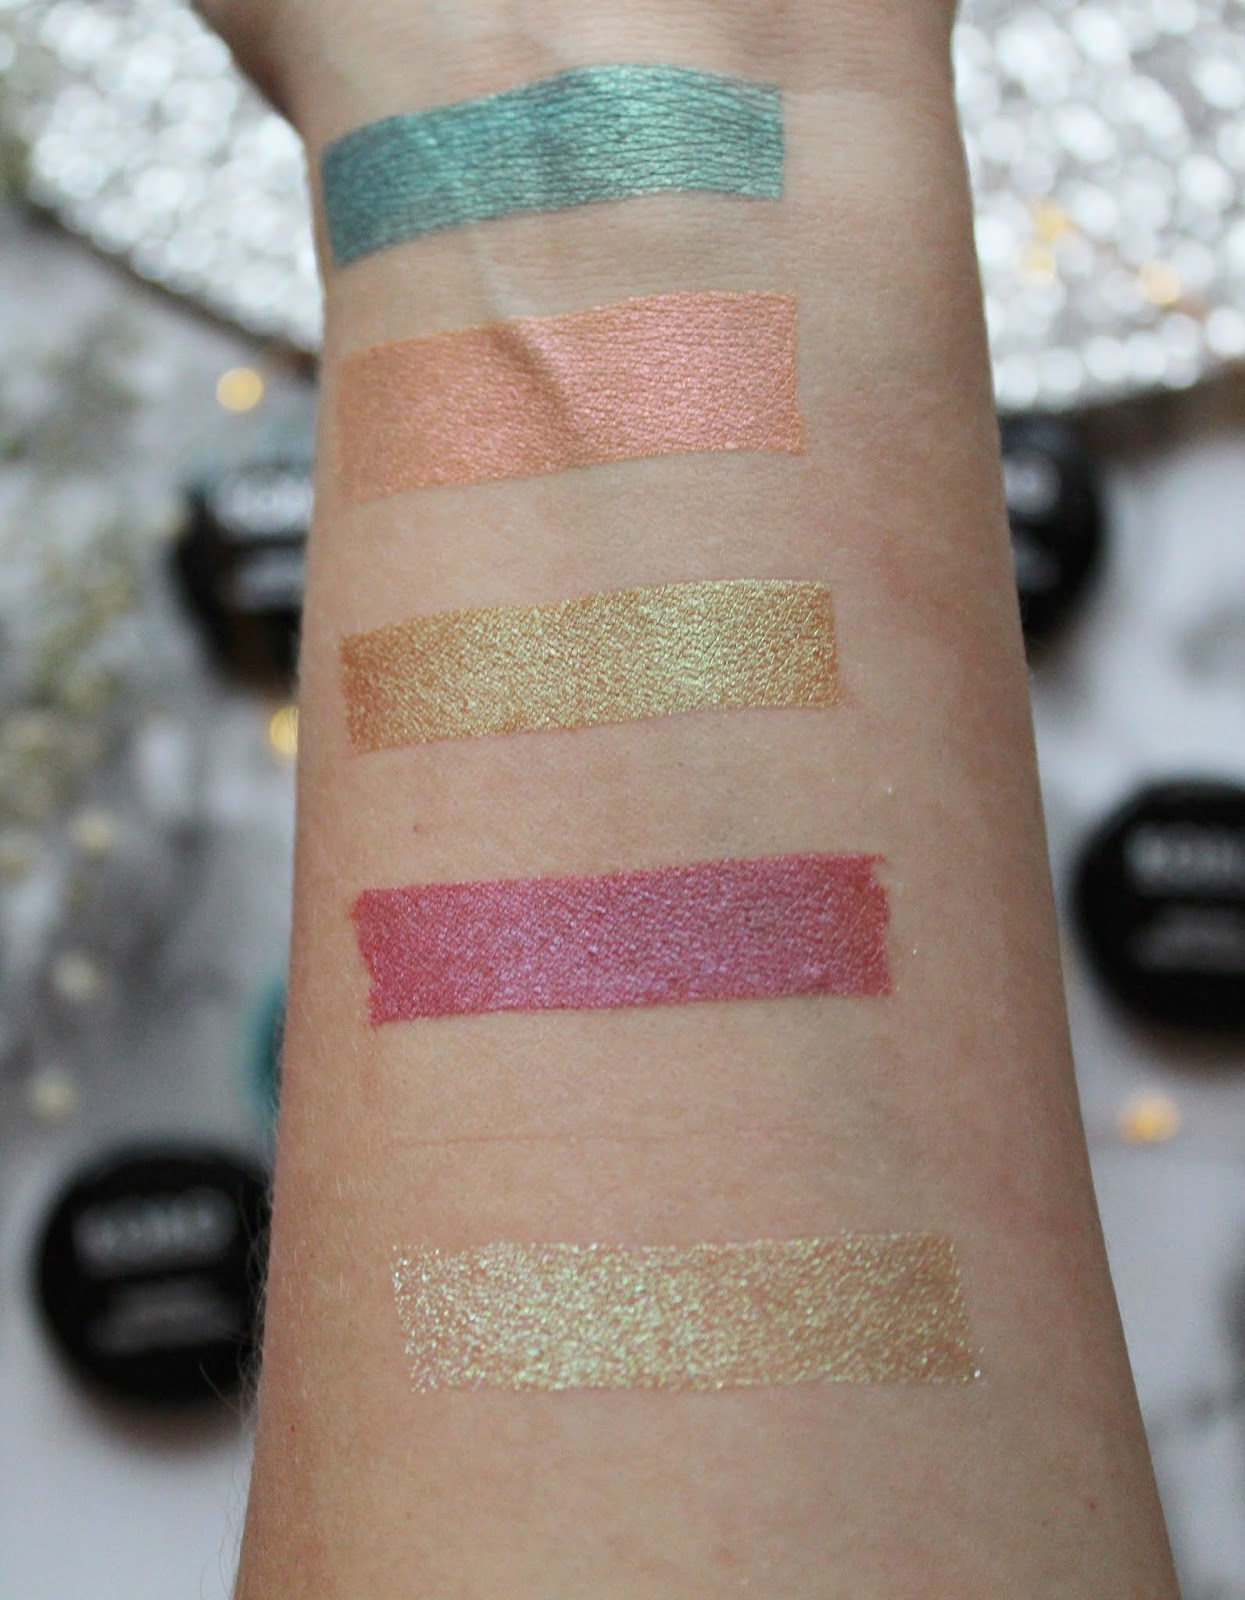 Kobo Professional Fantasy Pure Pigment swatch